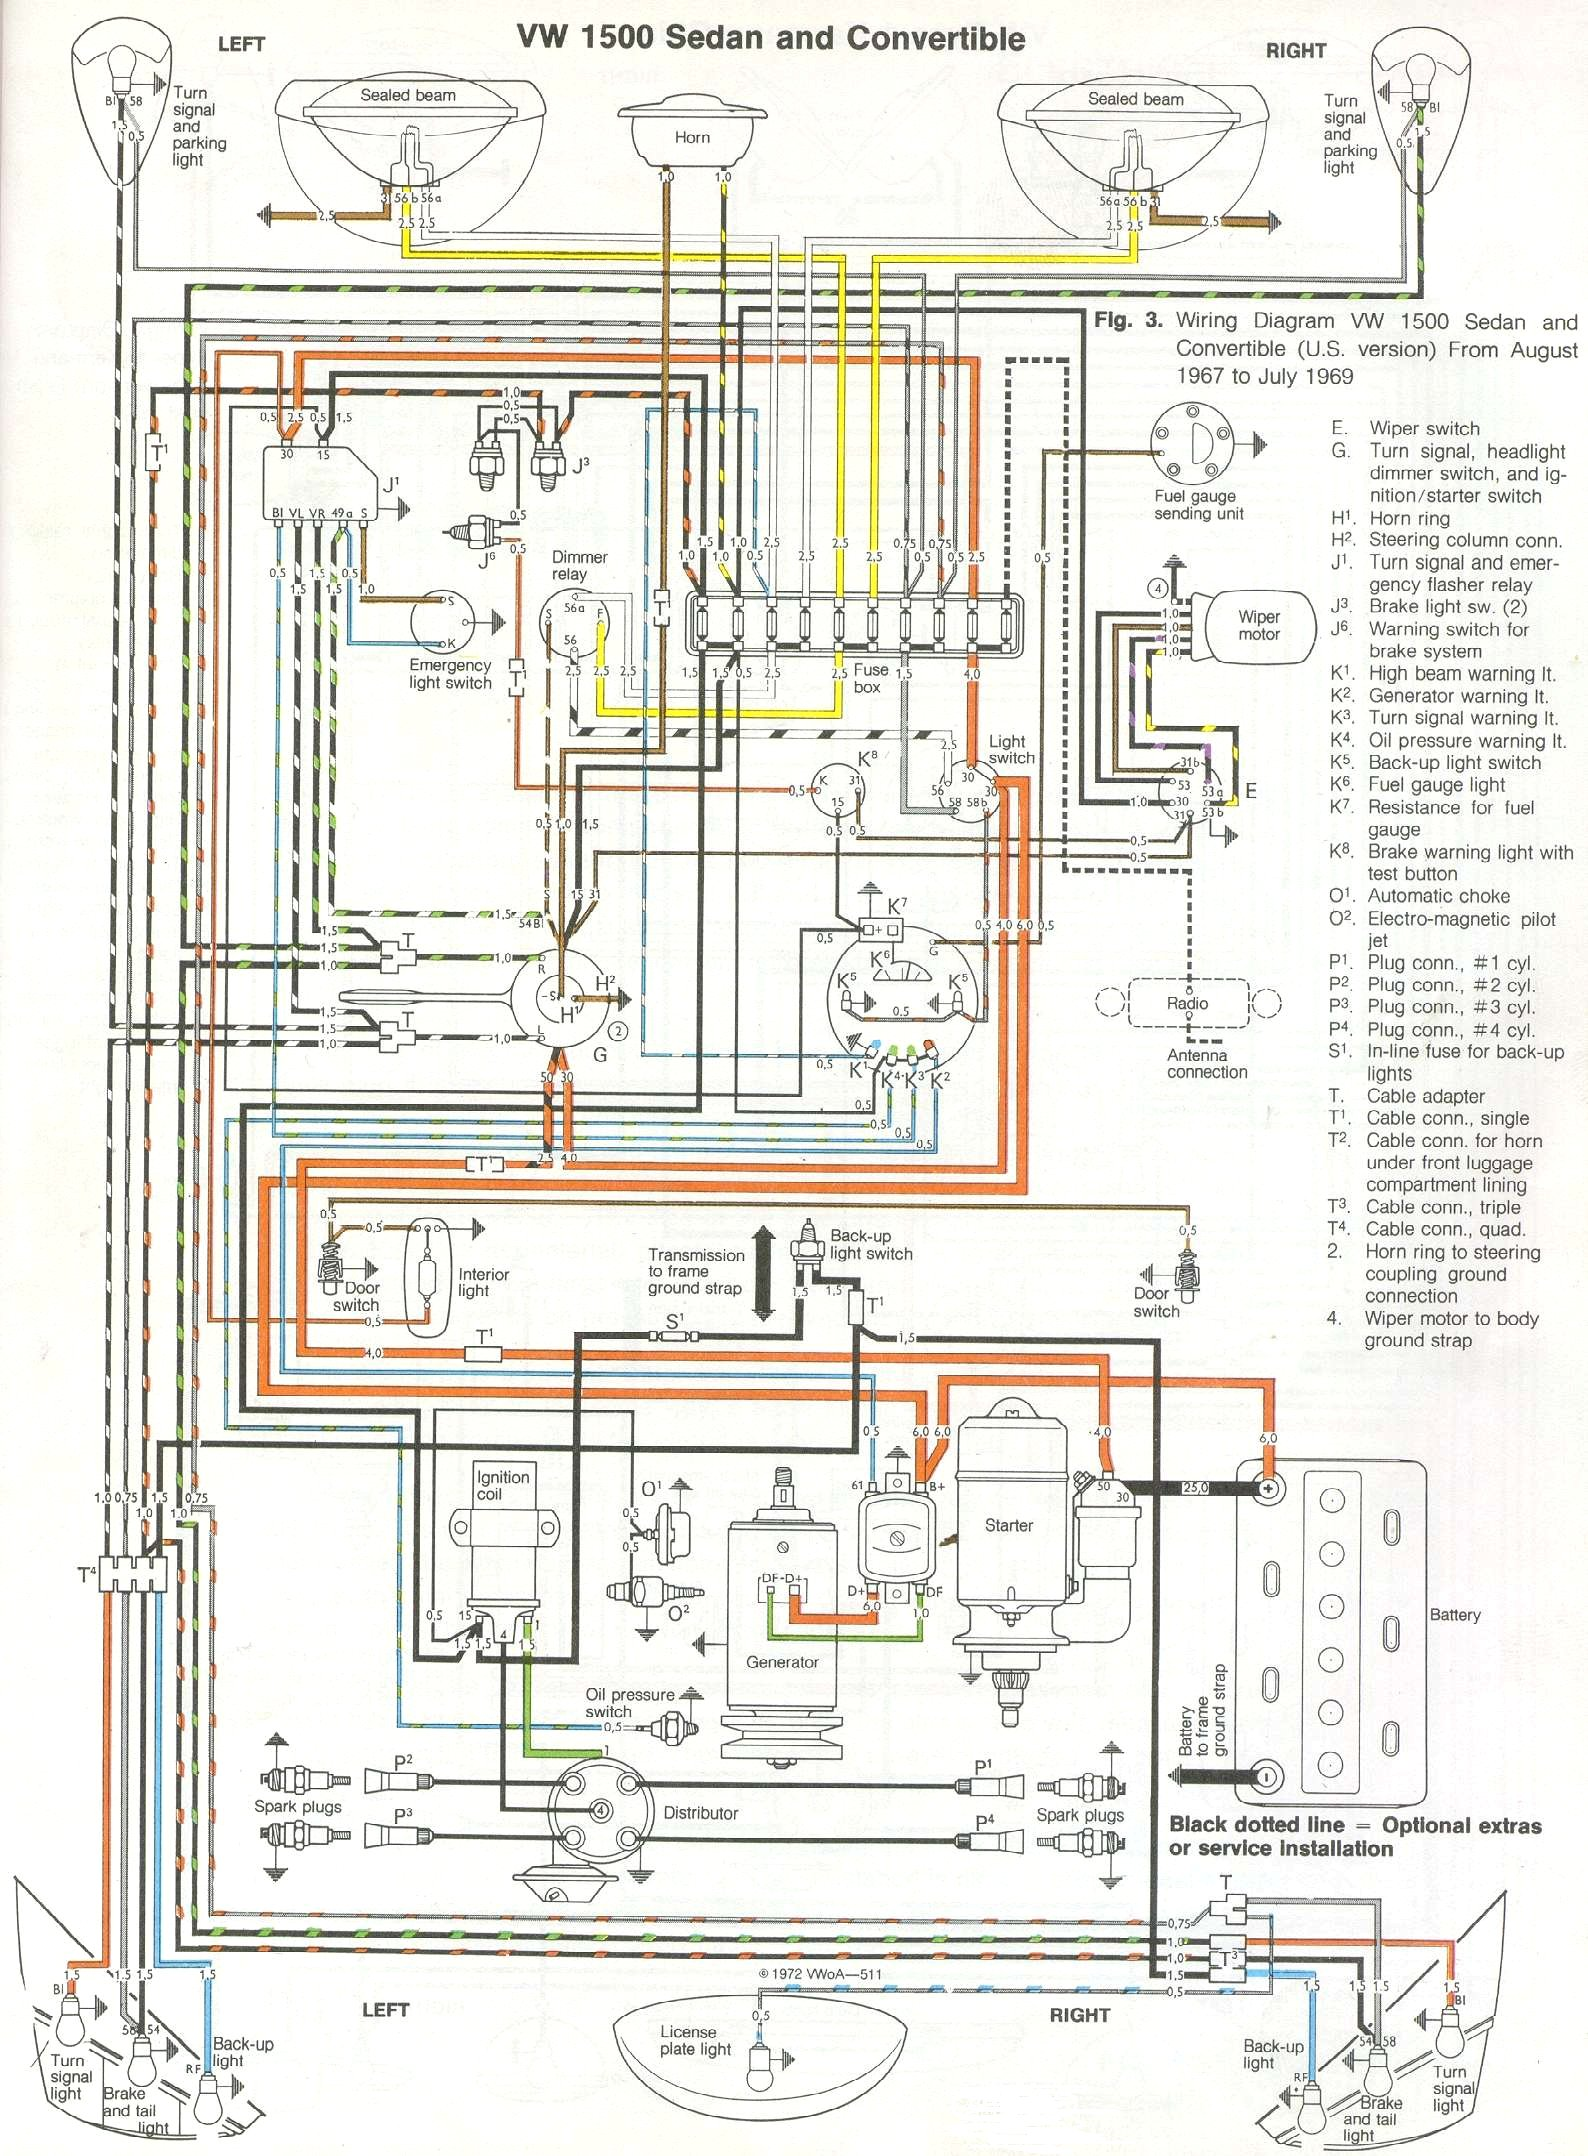 2006 Dodge Charger Wiring Harness Diagram Great Design Of 2008 Fuse 1969 71 Beetle Thegoldenbug Com Box 06